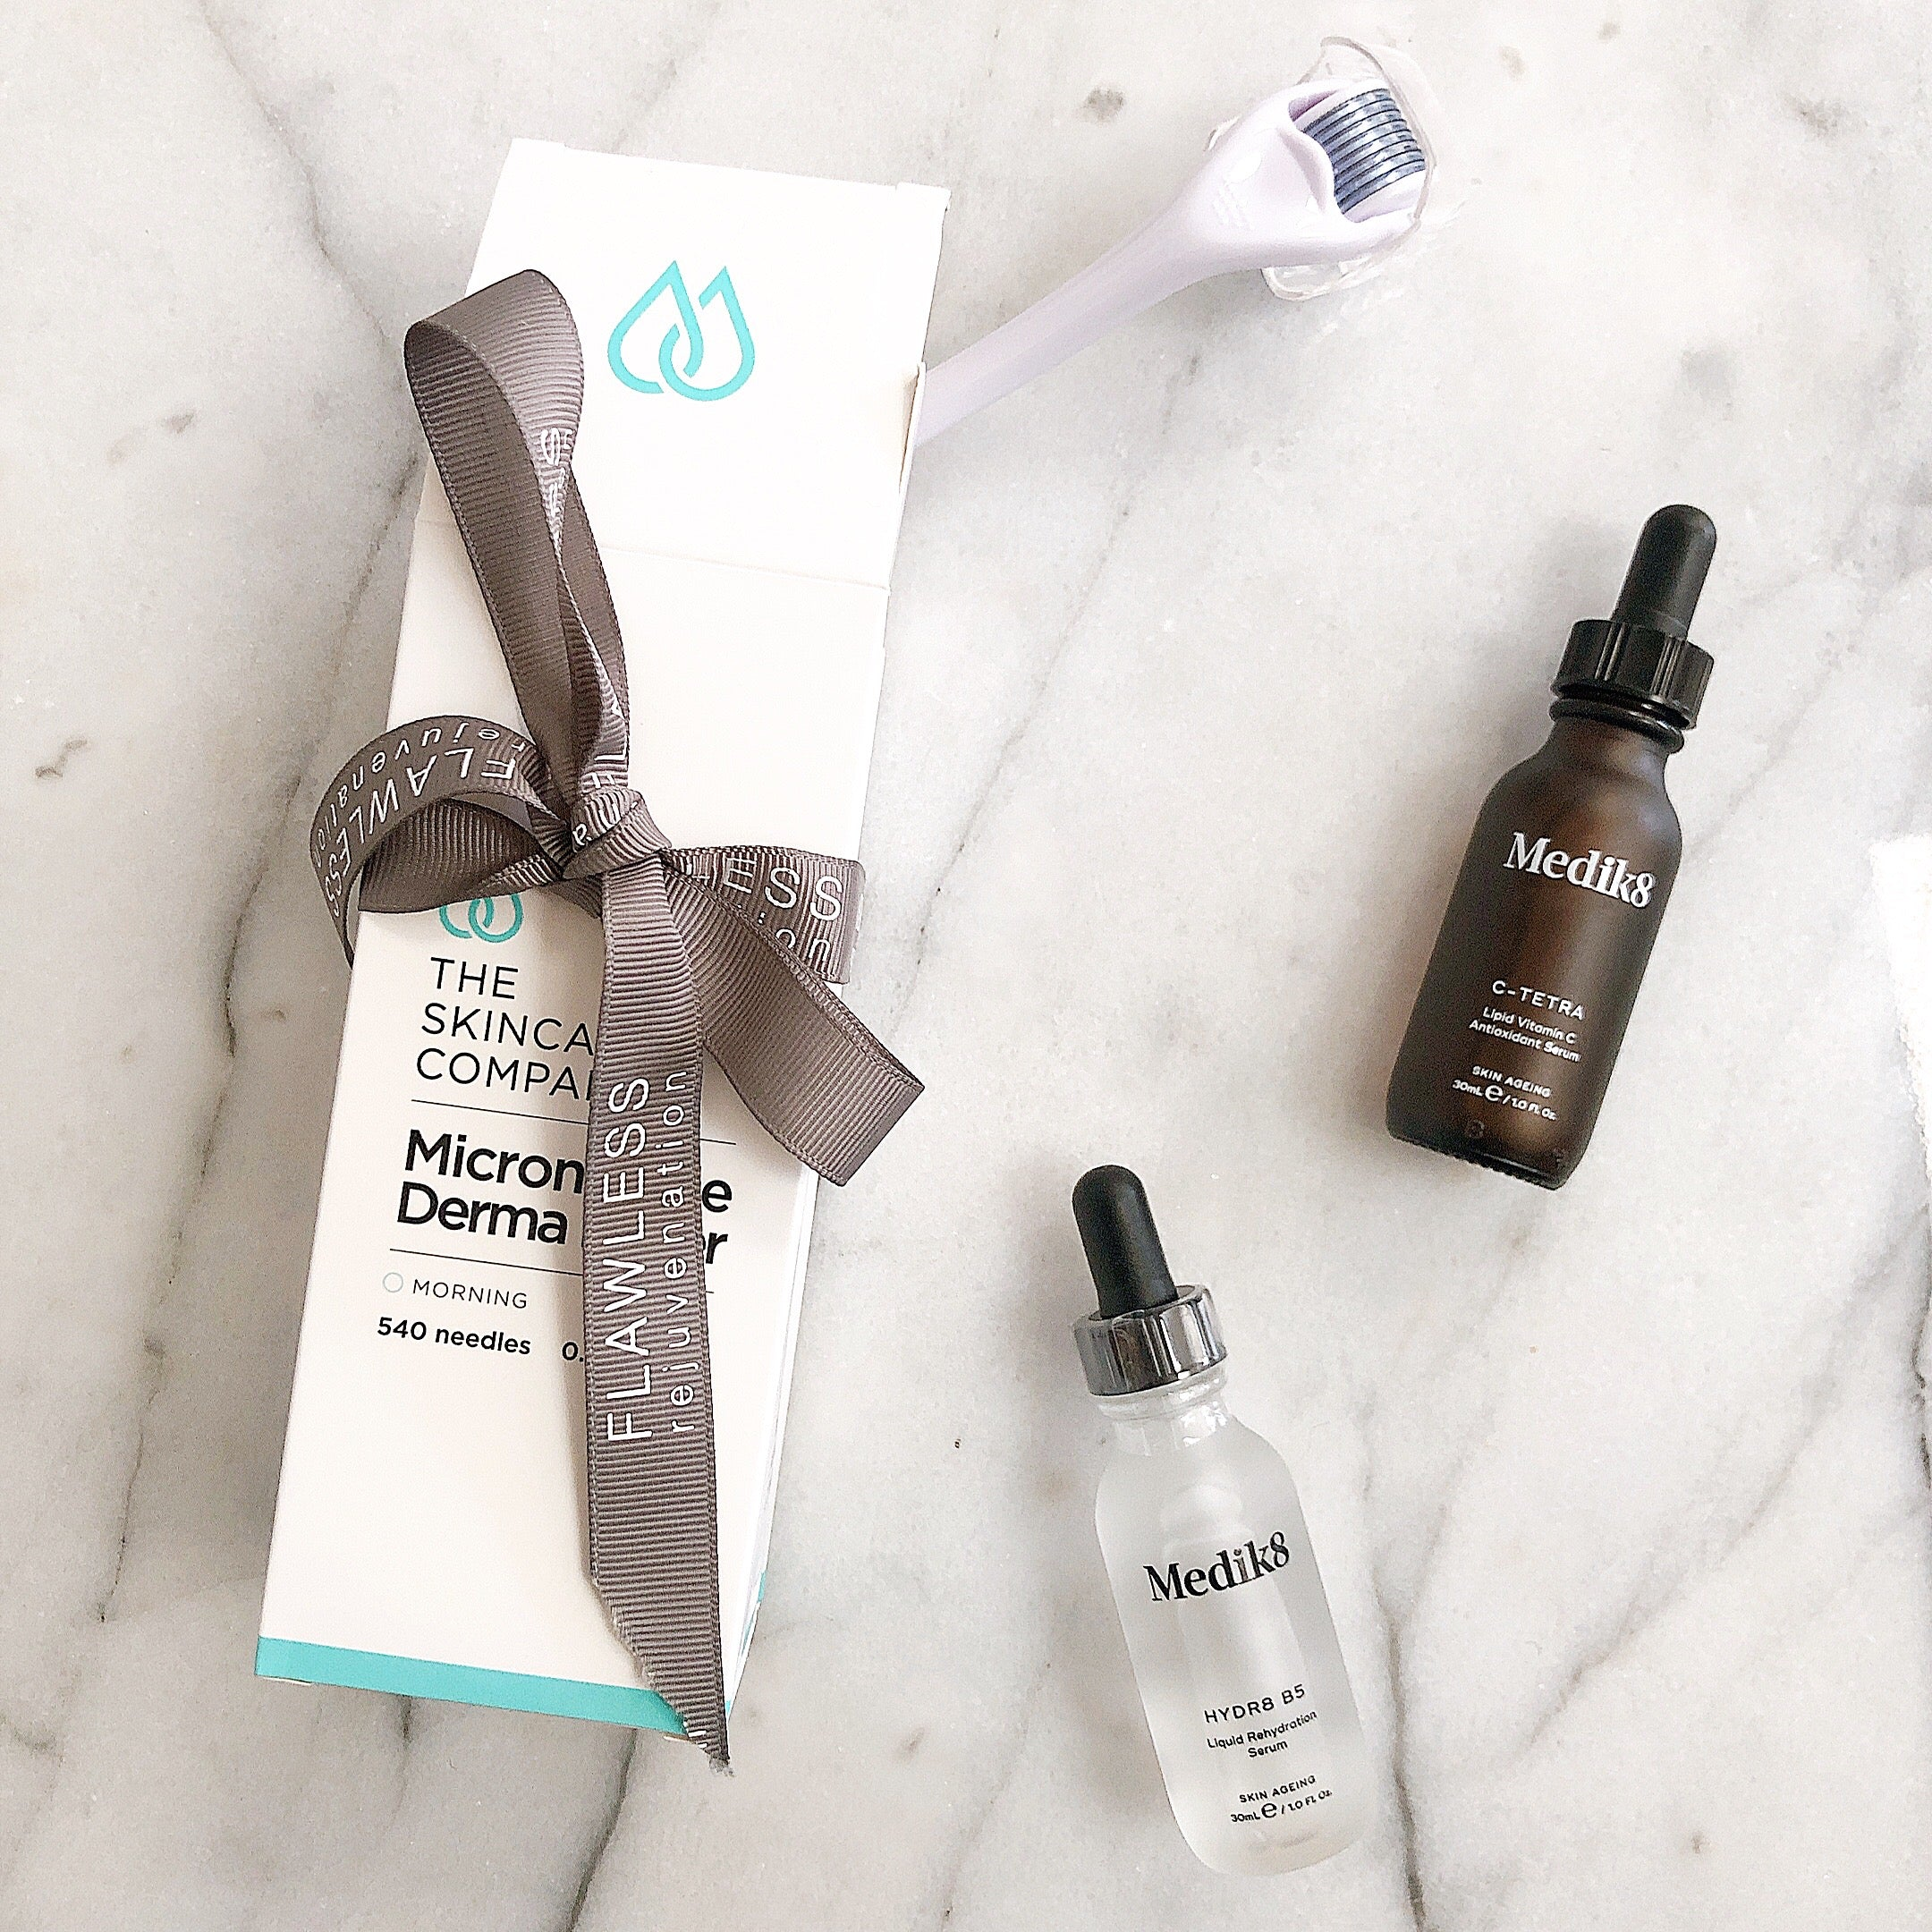 Derma Roller & Serum Duo Pack - Medik8 Hydrate and Brighten